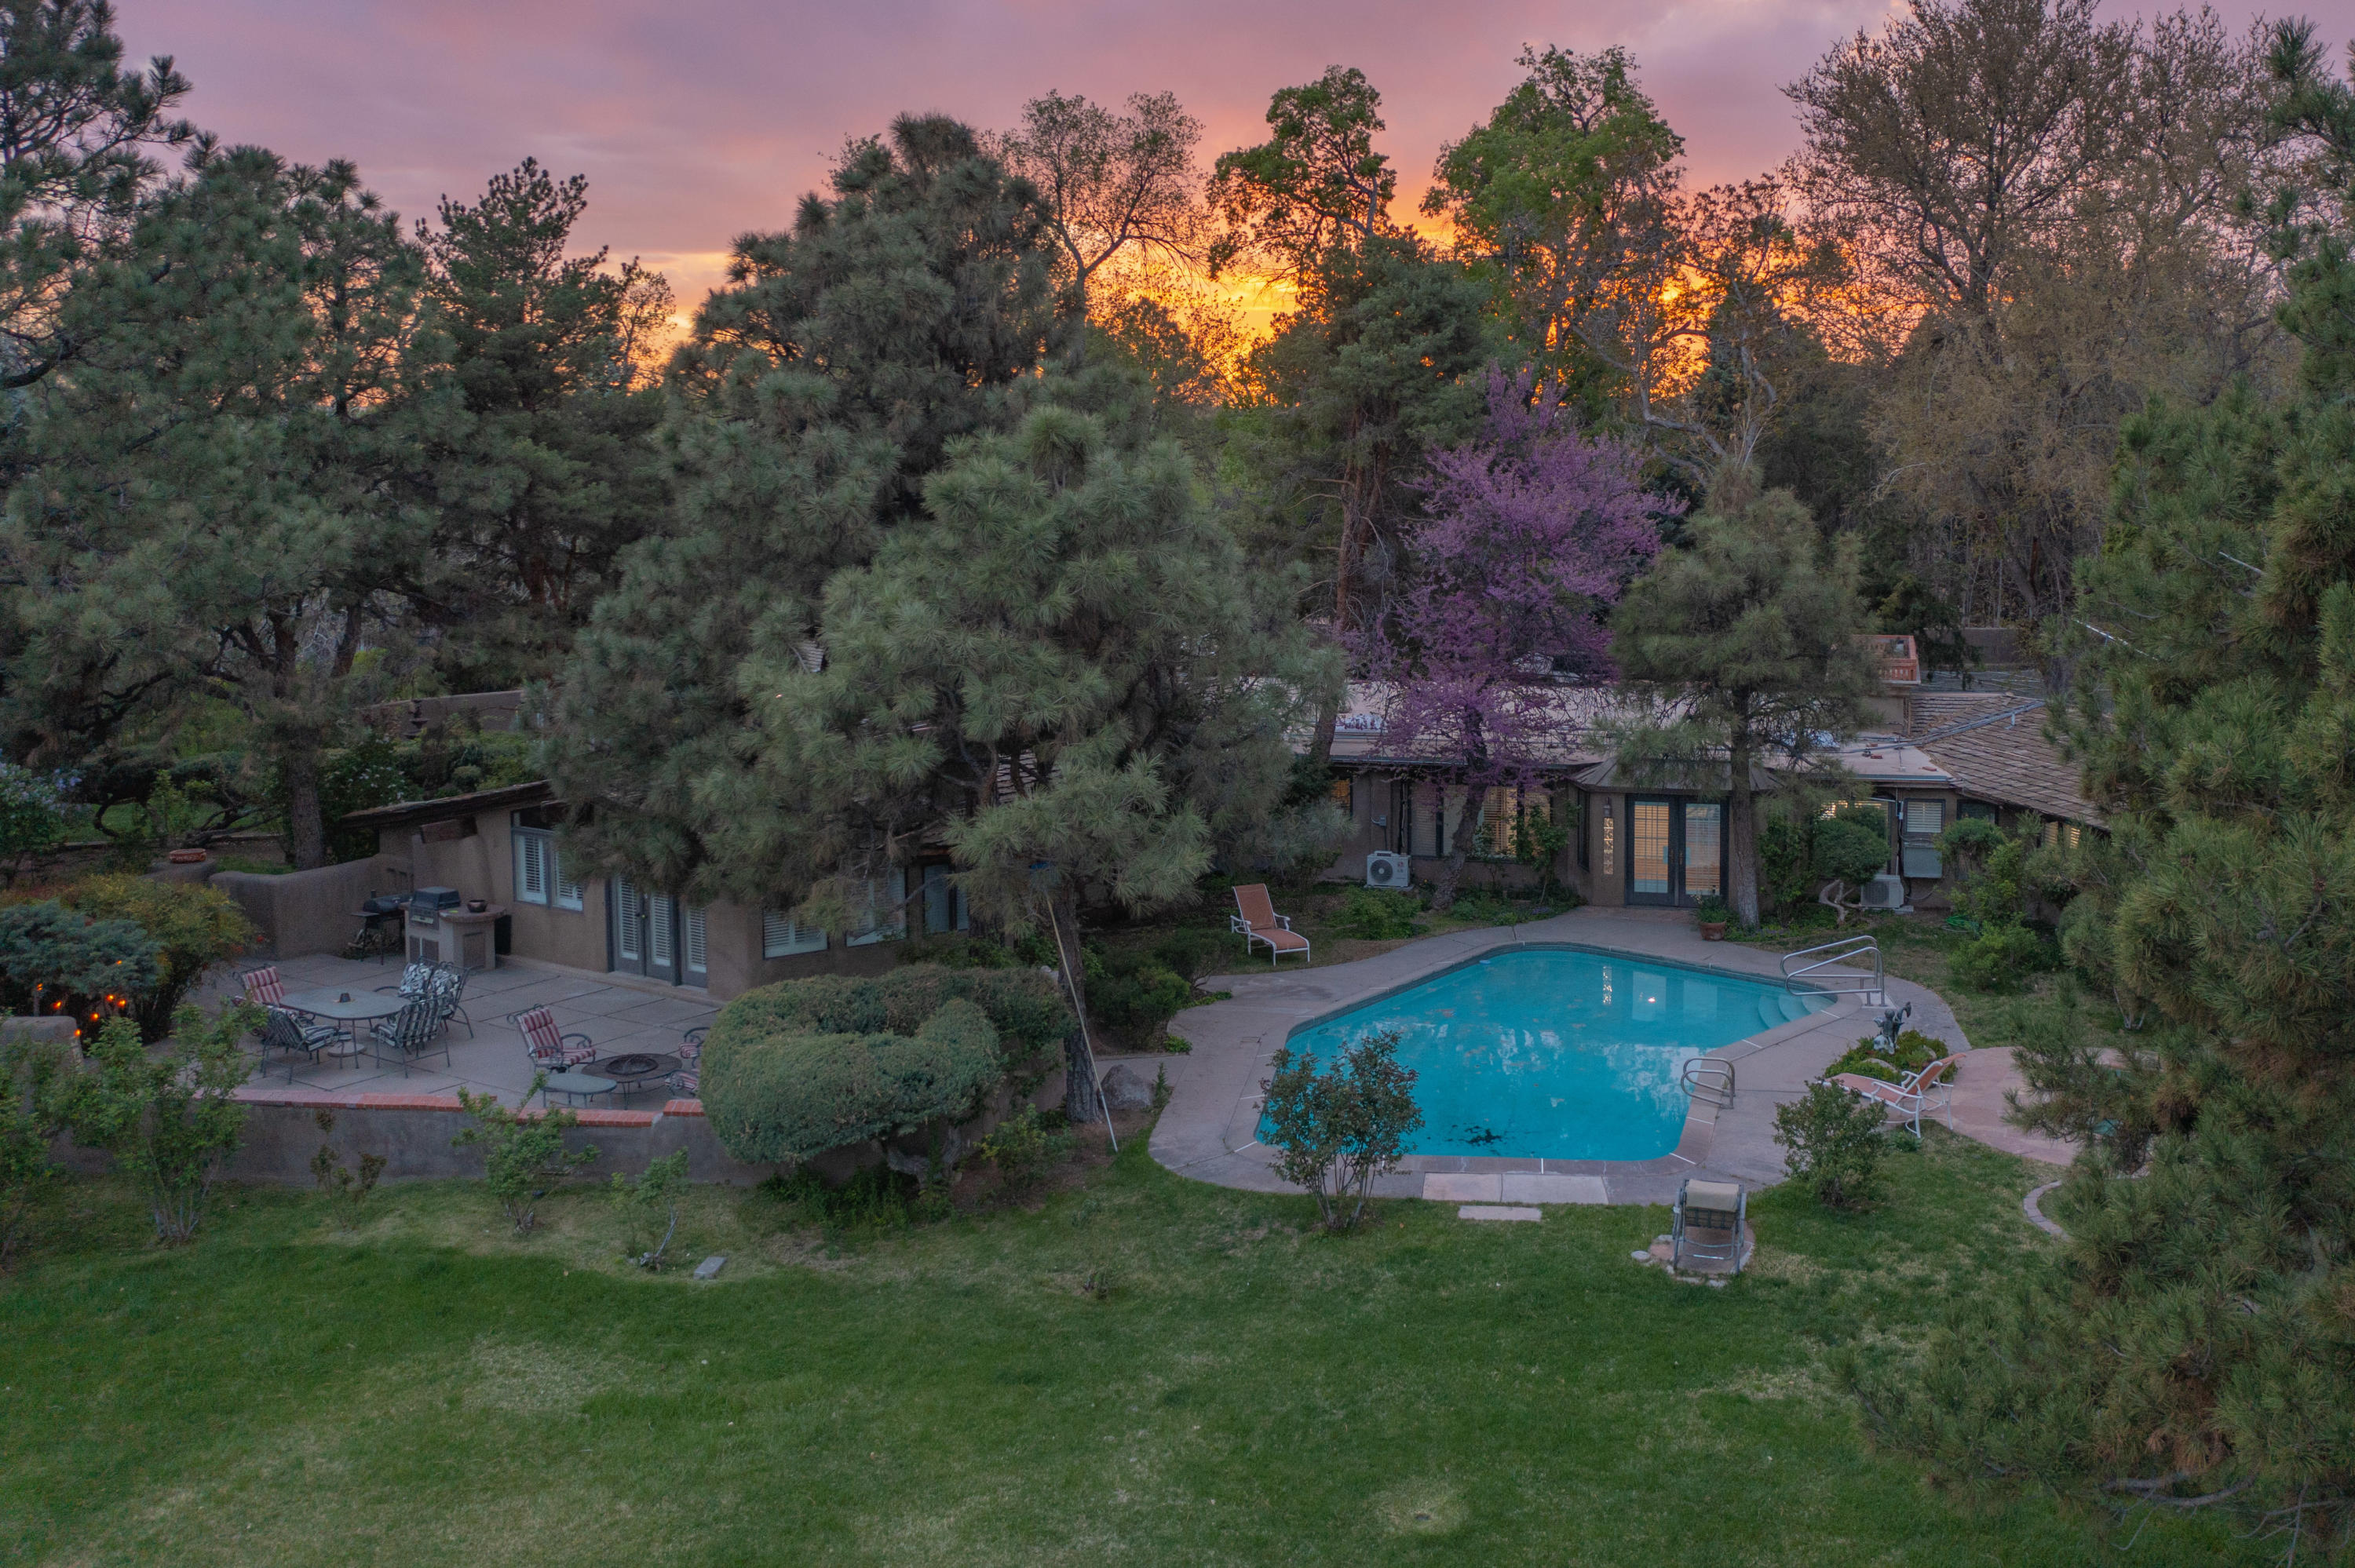 Stunning Nat Kaplan Adobe beauty tucked away on a private 2.31 acre gate property located in the coveted North Valley community. Home features 4,773sf with 4 bedrooms, 4 bathrooms, multiple living areas, a 909sf casita and a pool! Original brick floors, adobe walls and Nat Kaplan beamed ceilings line the halls of this home. Beautiful main living with adobe charm, hand crafted beamed ceilings and wood burning fireplace. Kitchen with custom cabinetry, tile countertops and more! Spacious owners suite with a vaulted beamed ceiling, outside access to the pool and private bath. Take advantage of the home office also perfect when home schooling! 900sf casita w/ a living area, kitchen, bath & bedroom! Mature landscape maintains your privacy when you take a dip in the pool or dine in the courtyard!